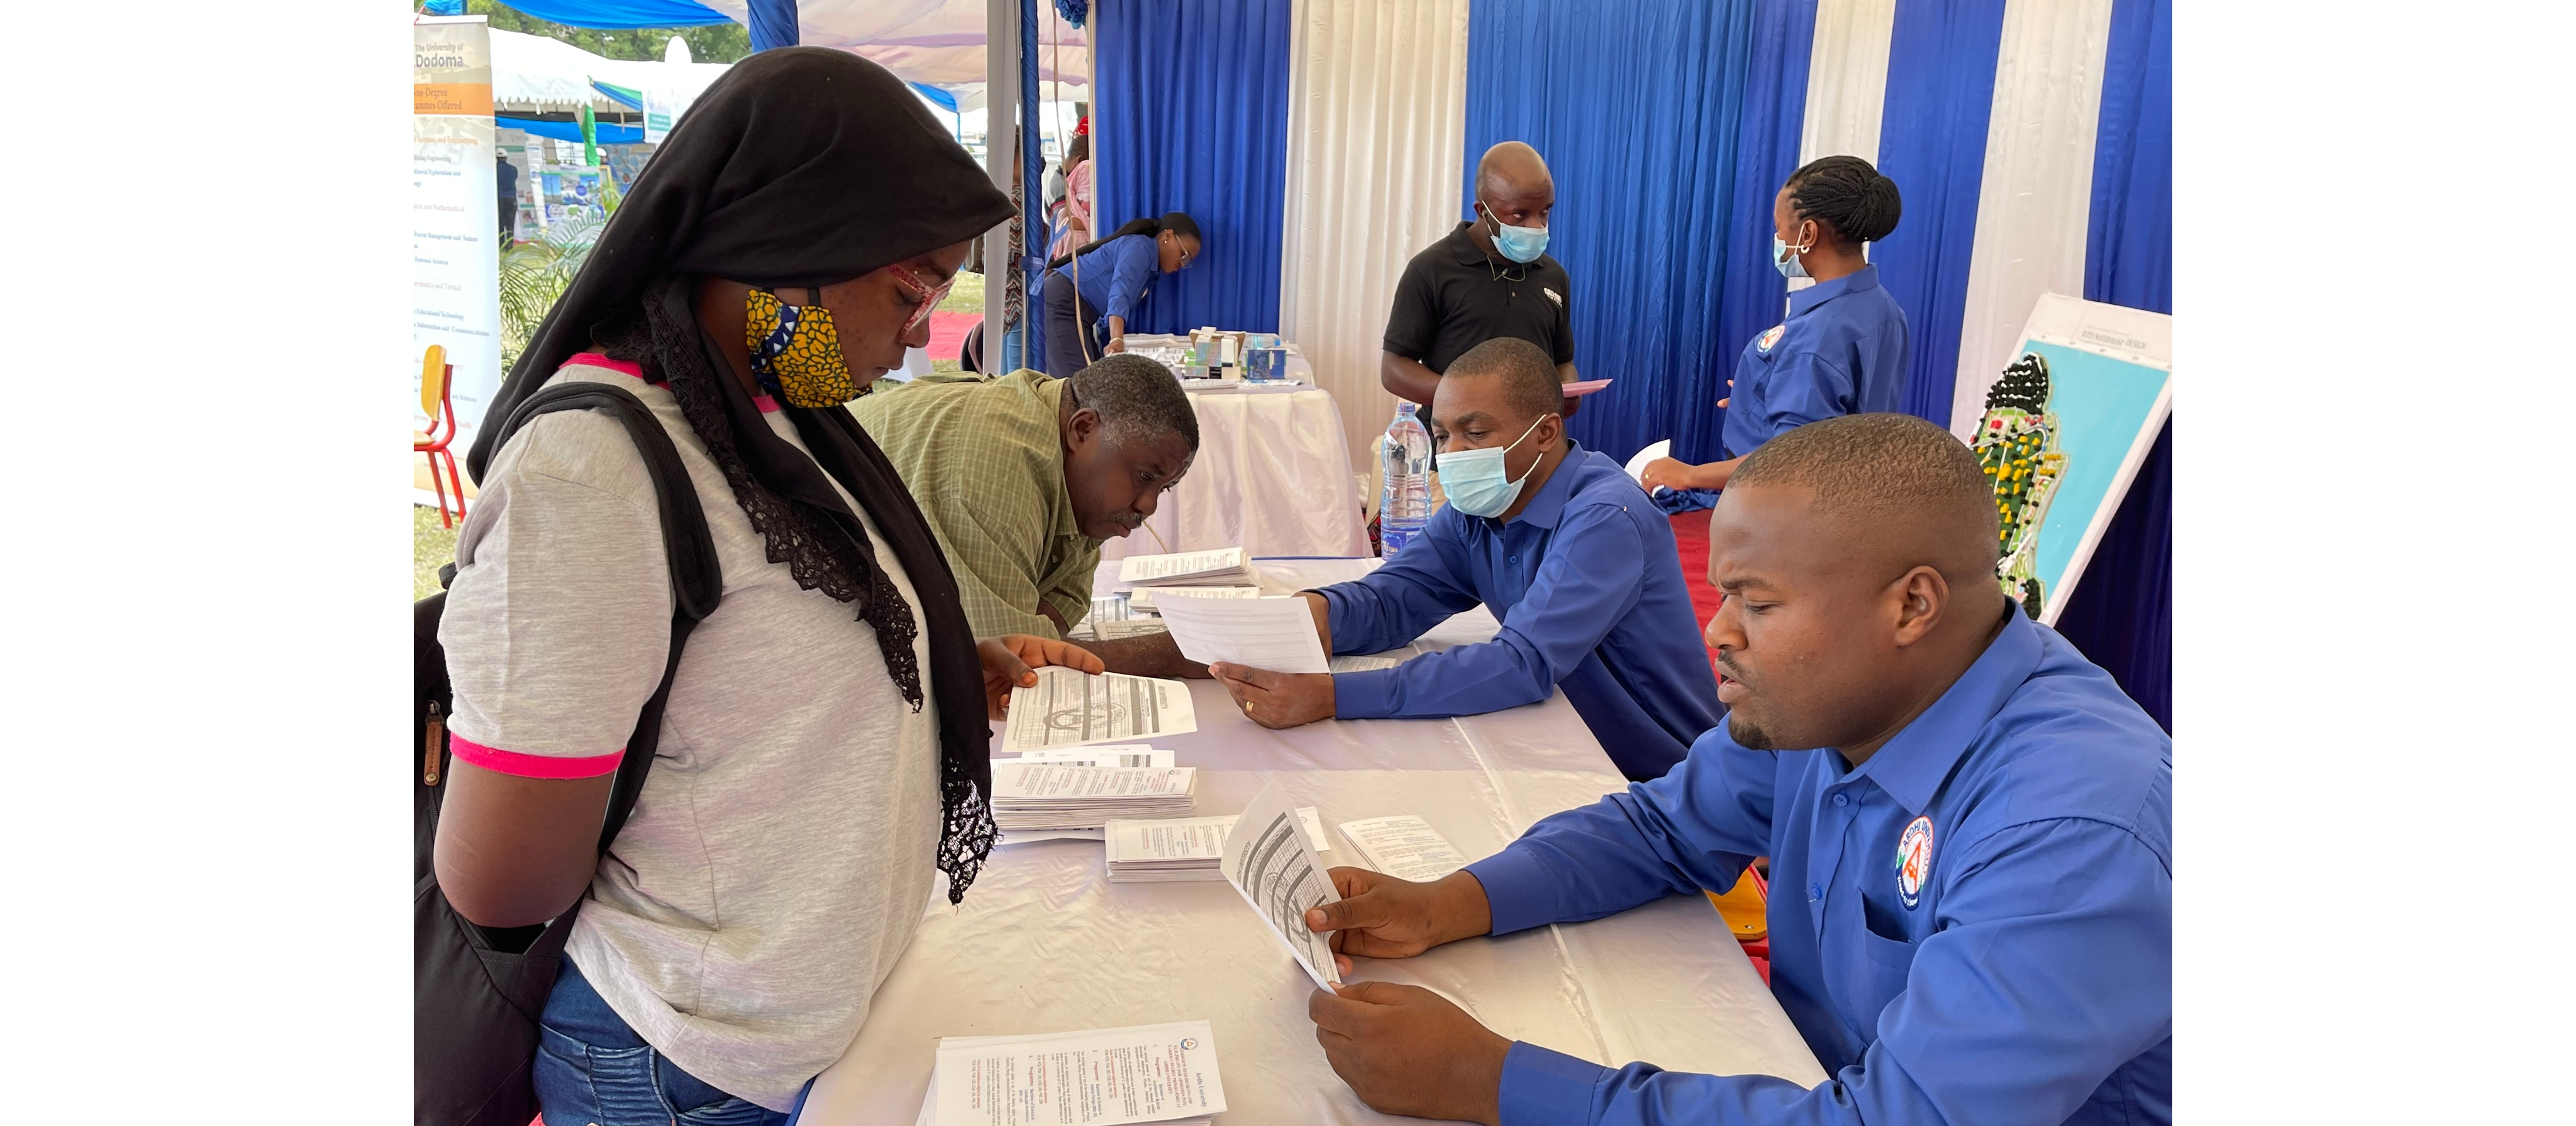 University staff providing assistance to applicants of the Academic programmes during TCU exhibition at Mnazi Mmoja ground